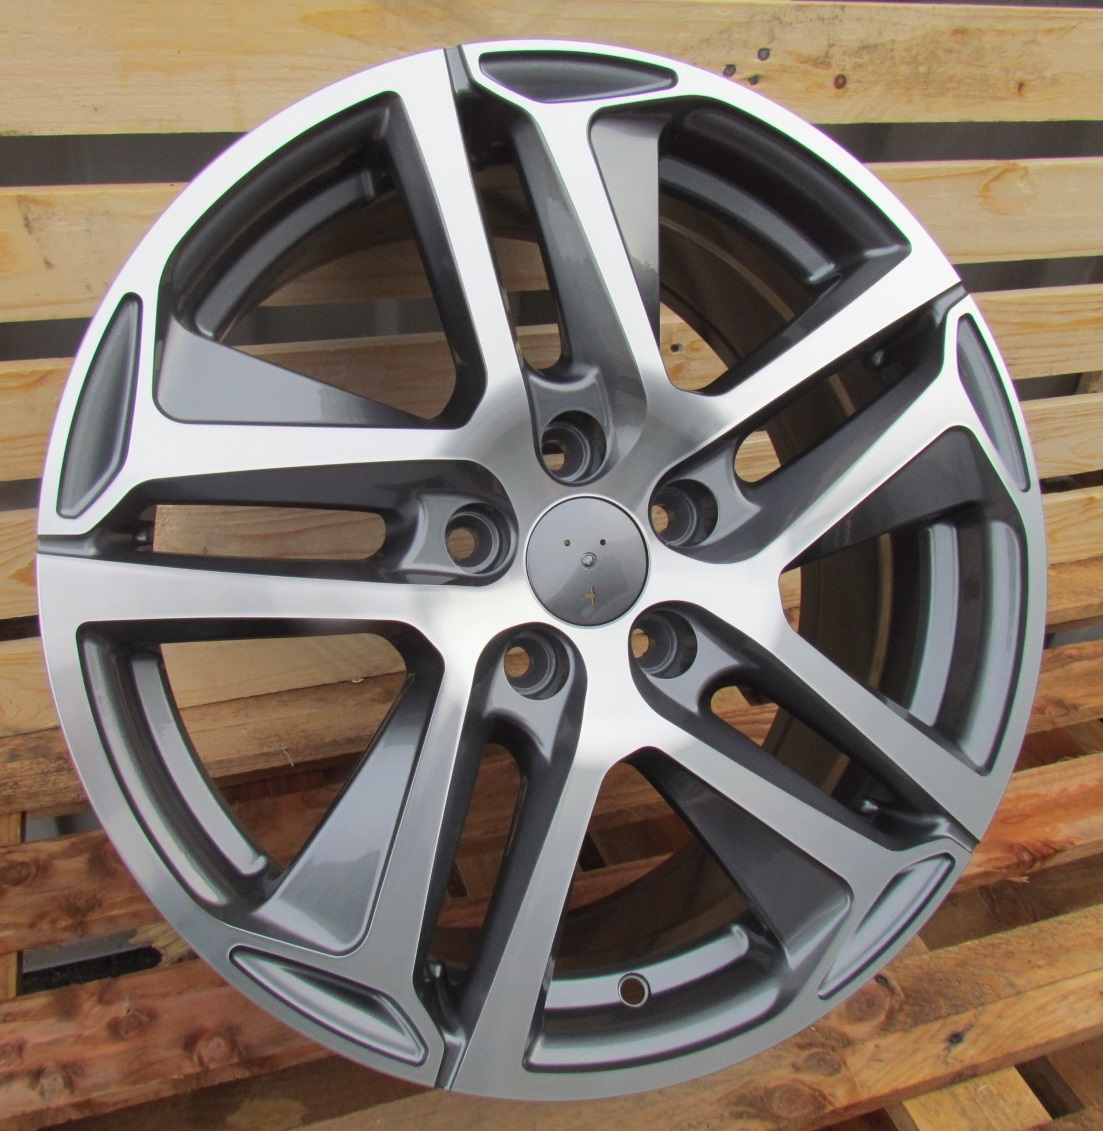 P17X7.5 4X108 ET25 65.1 PG534 (BK5516) MG+POWDER COATING RWR PEU (+3eur) (L6) 7.5x17 ET25 4x108